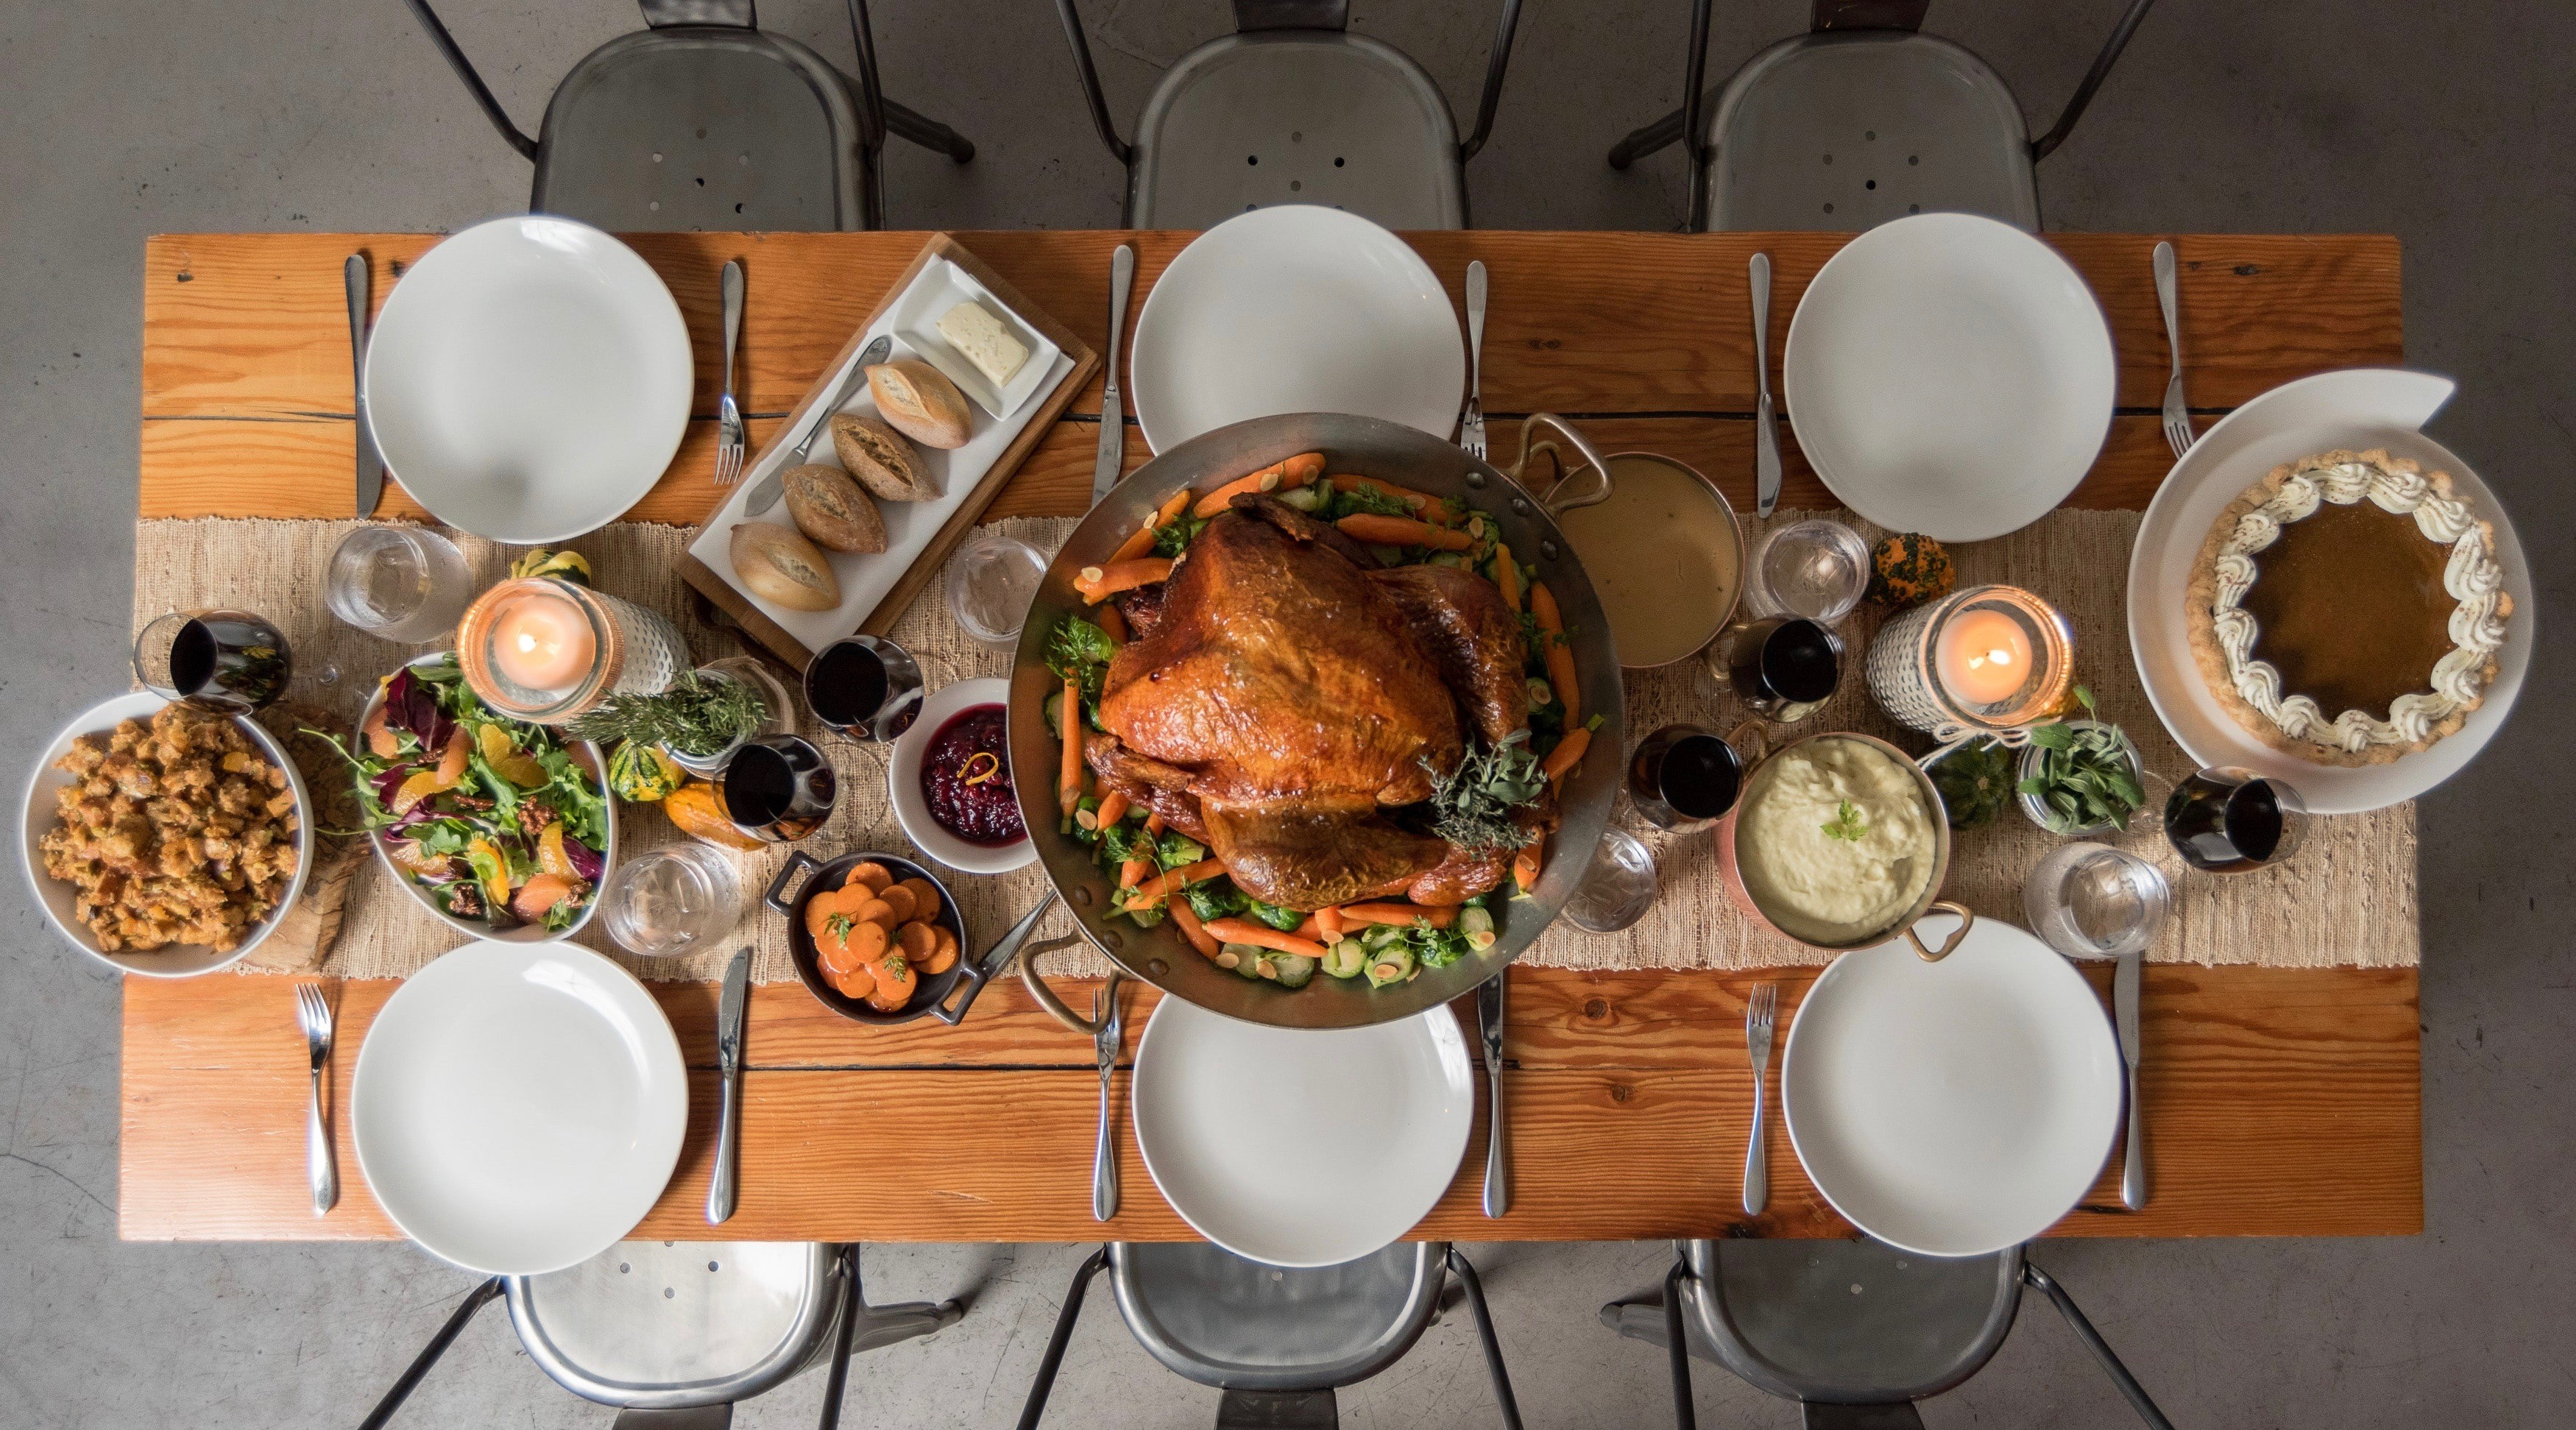 6 places to get Thanksgiving dinner to-go in Vancouver